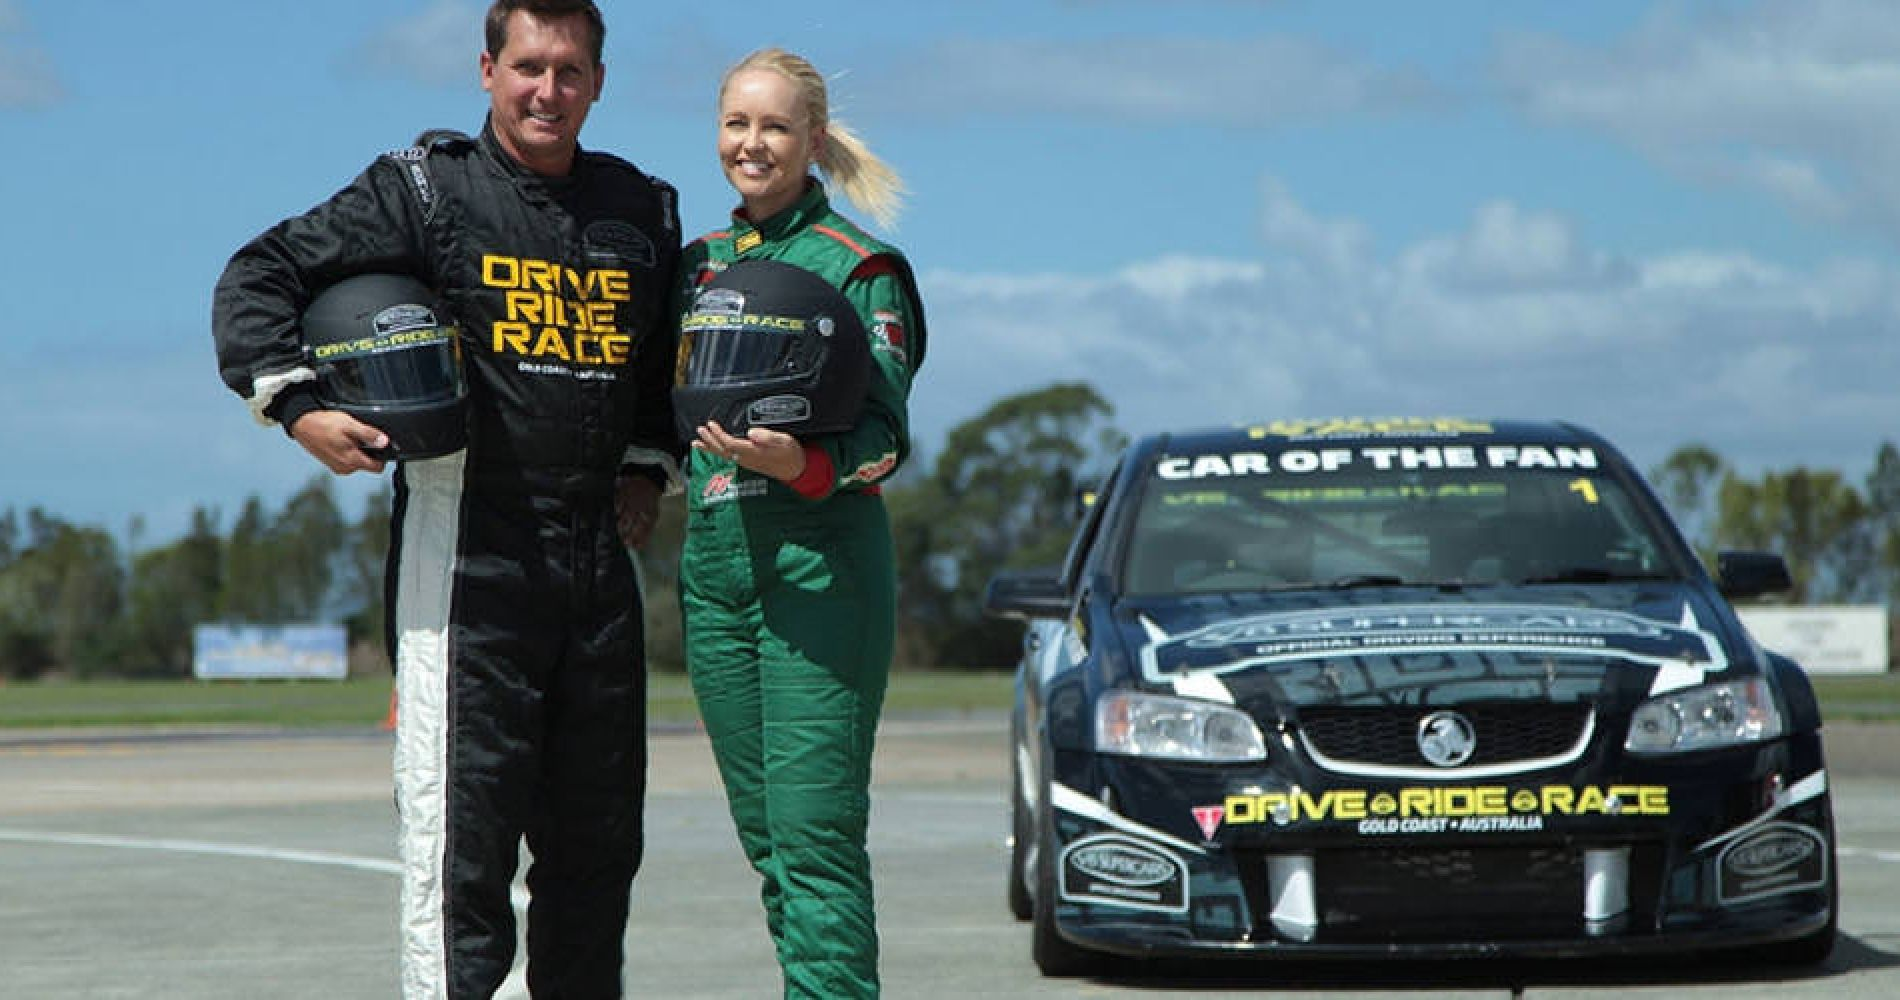 V8 Supercar Drive Australia Experience Gifts